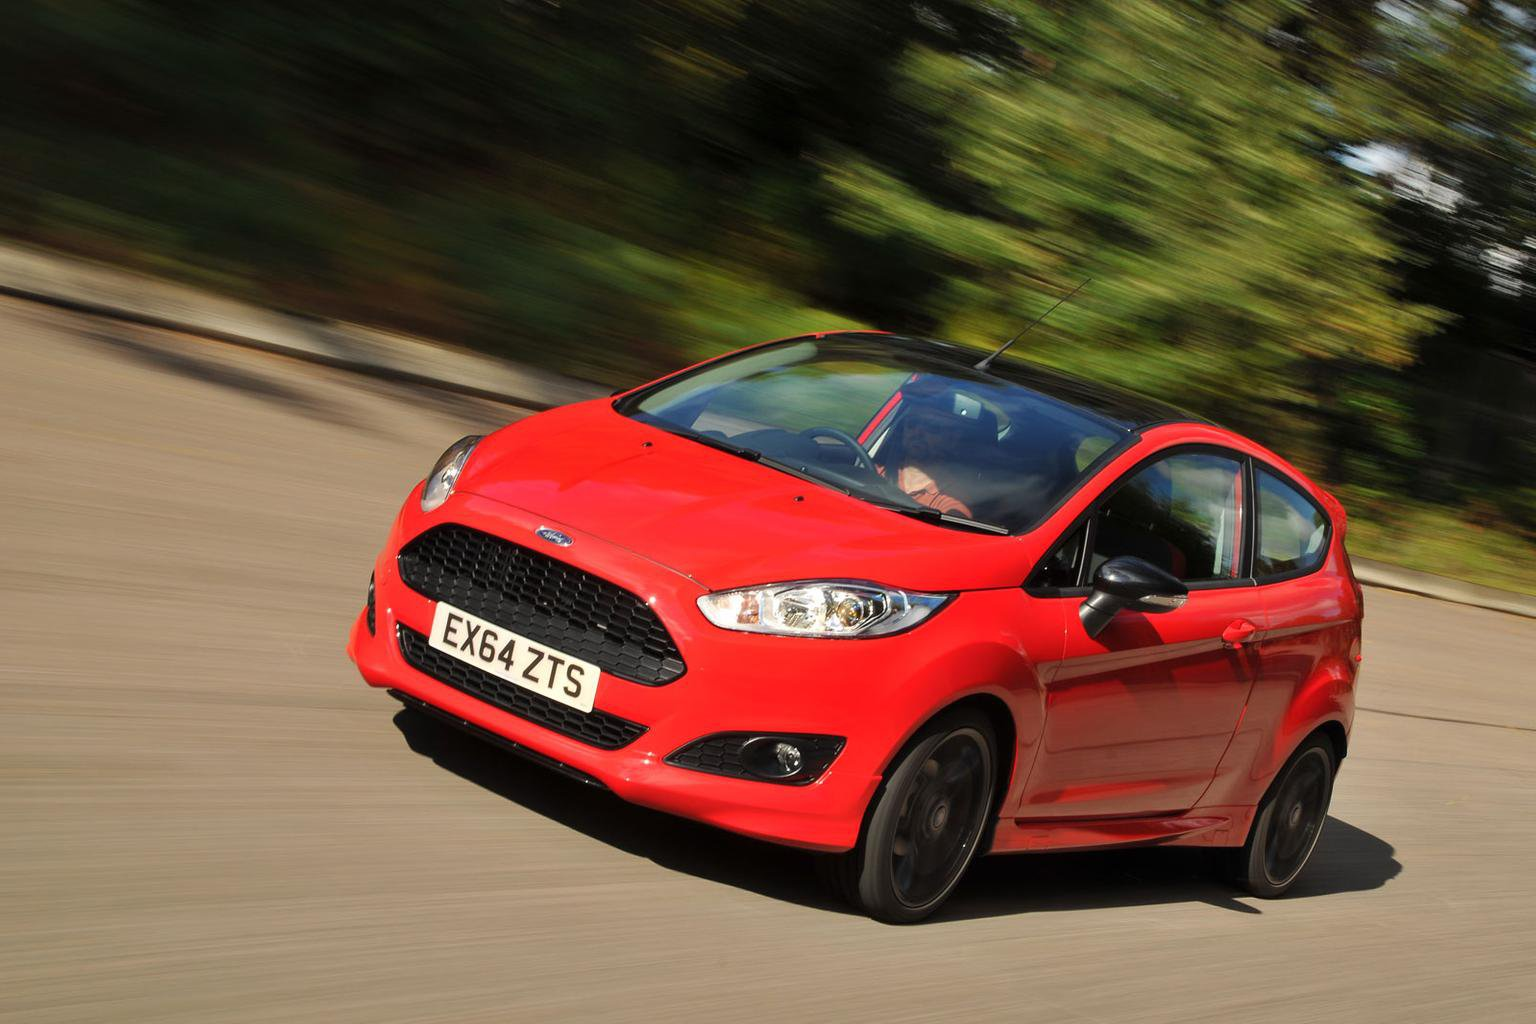 Deal of the Day: Ford Fiesta 1.0T Ecoboost 140 Zetec S Red Edition